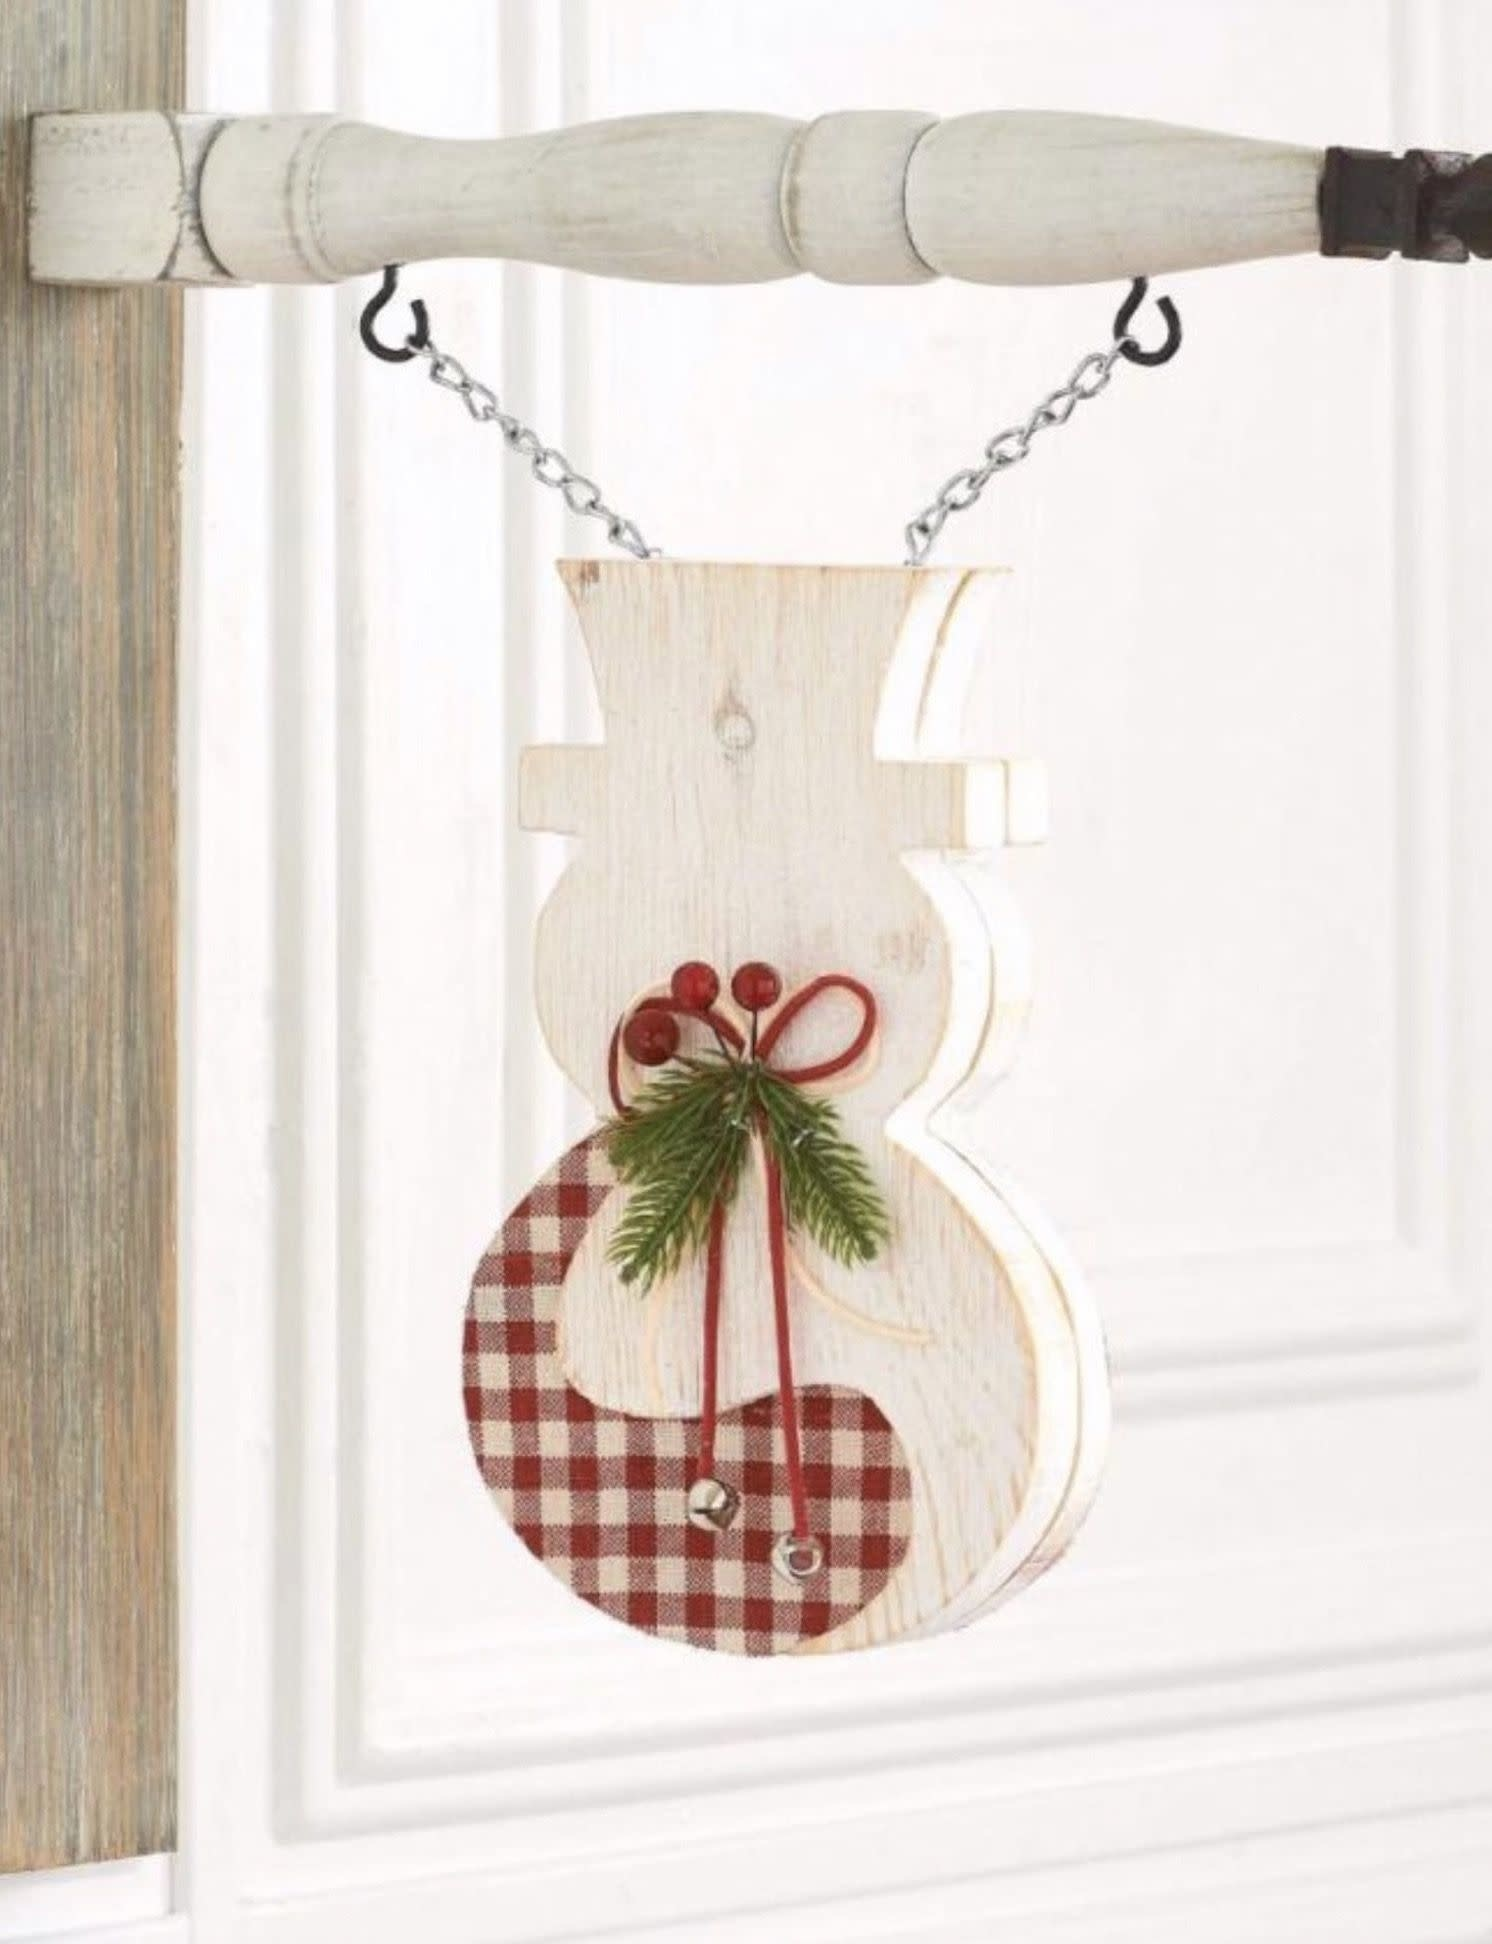 K & K Interiors White & Red Gingham Double Sided Snowman Arrow Replacement